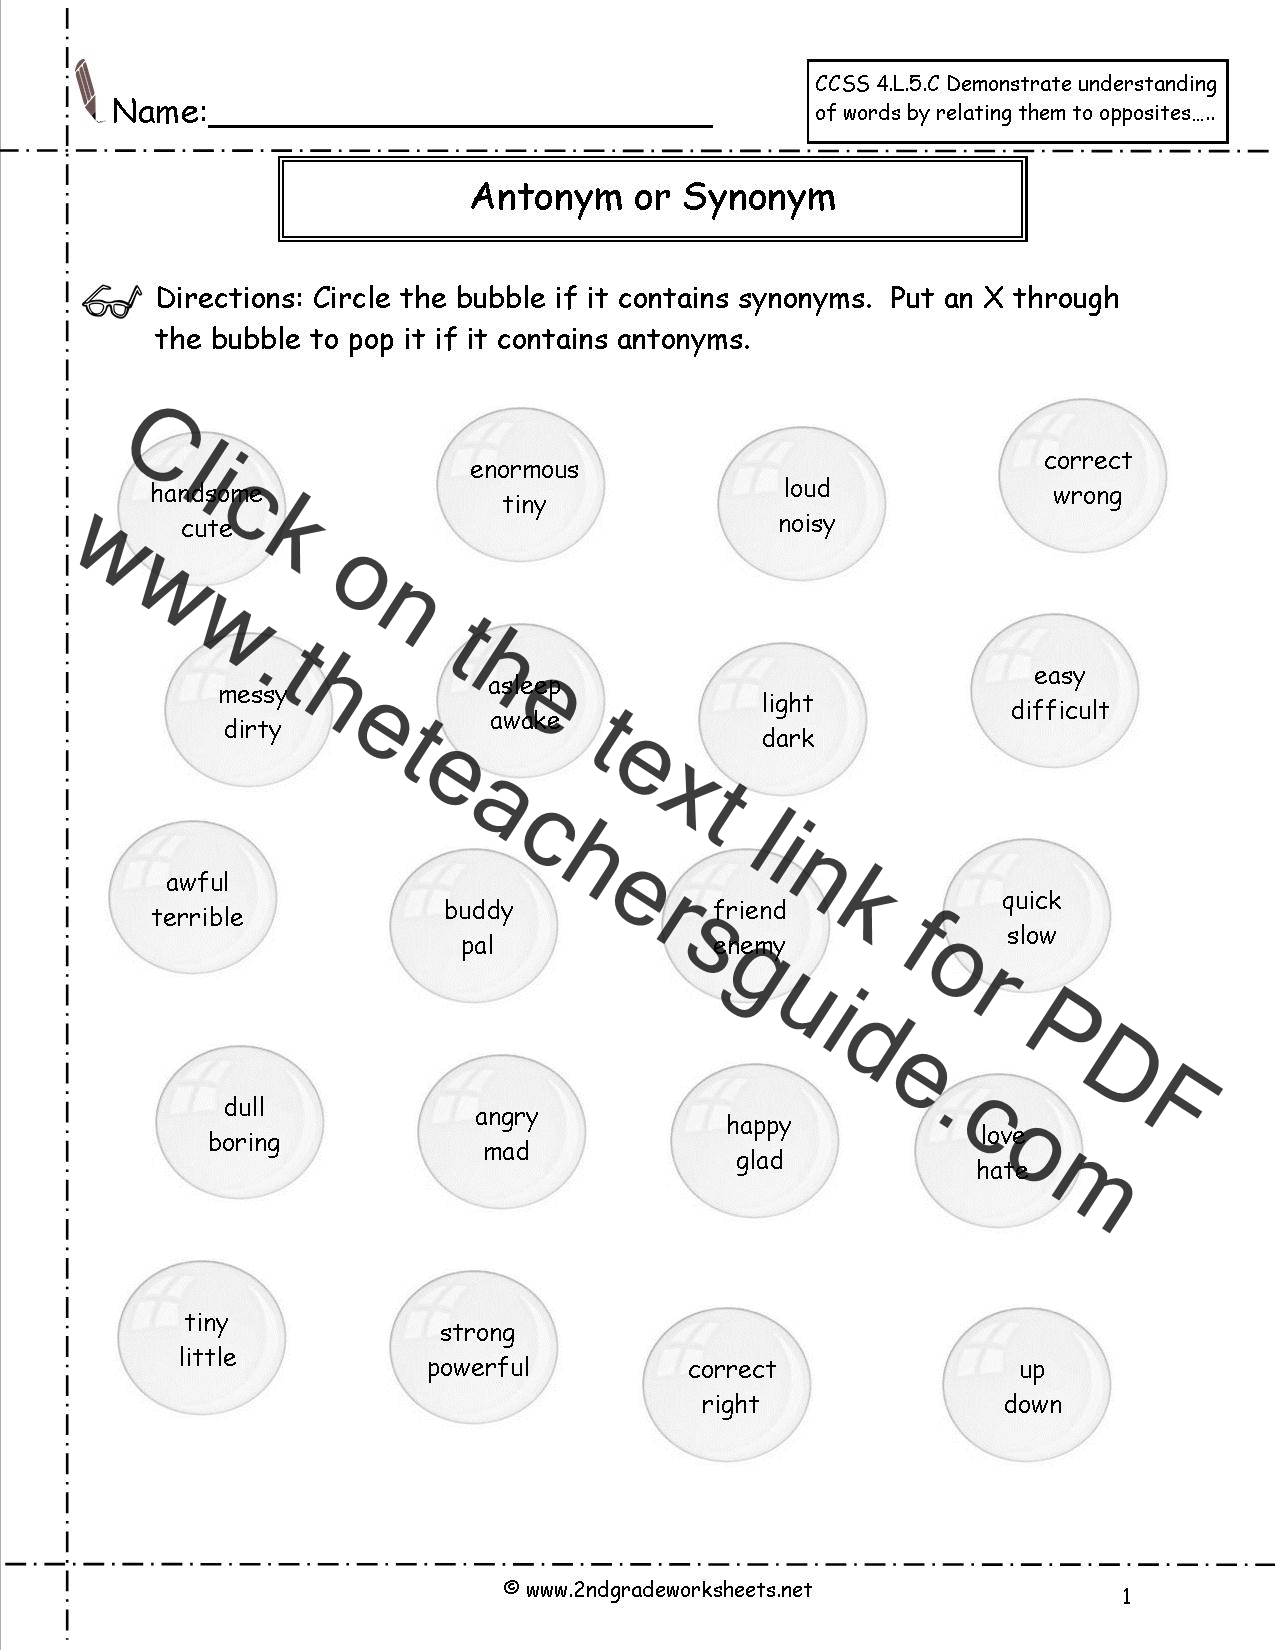 Synonyms and Antonyms Worksheets – Synonym and Antonym Worksheet